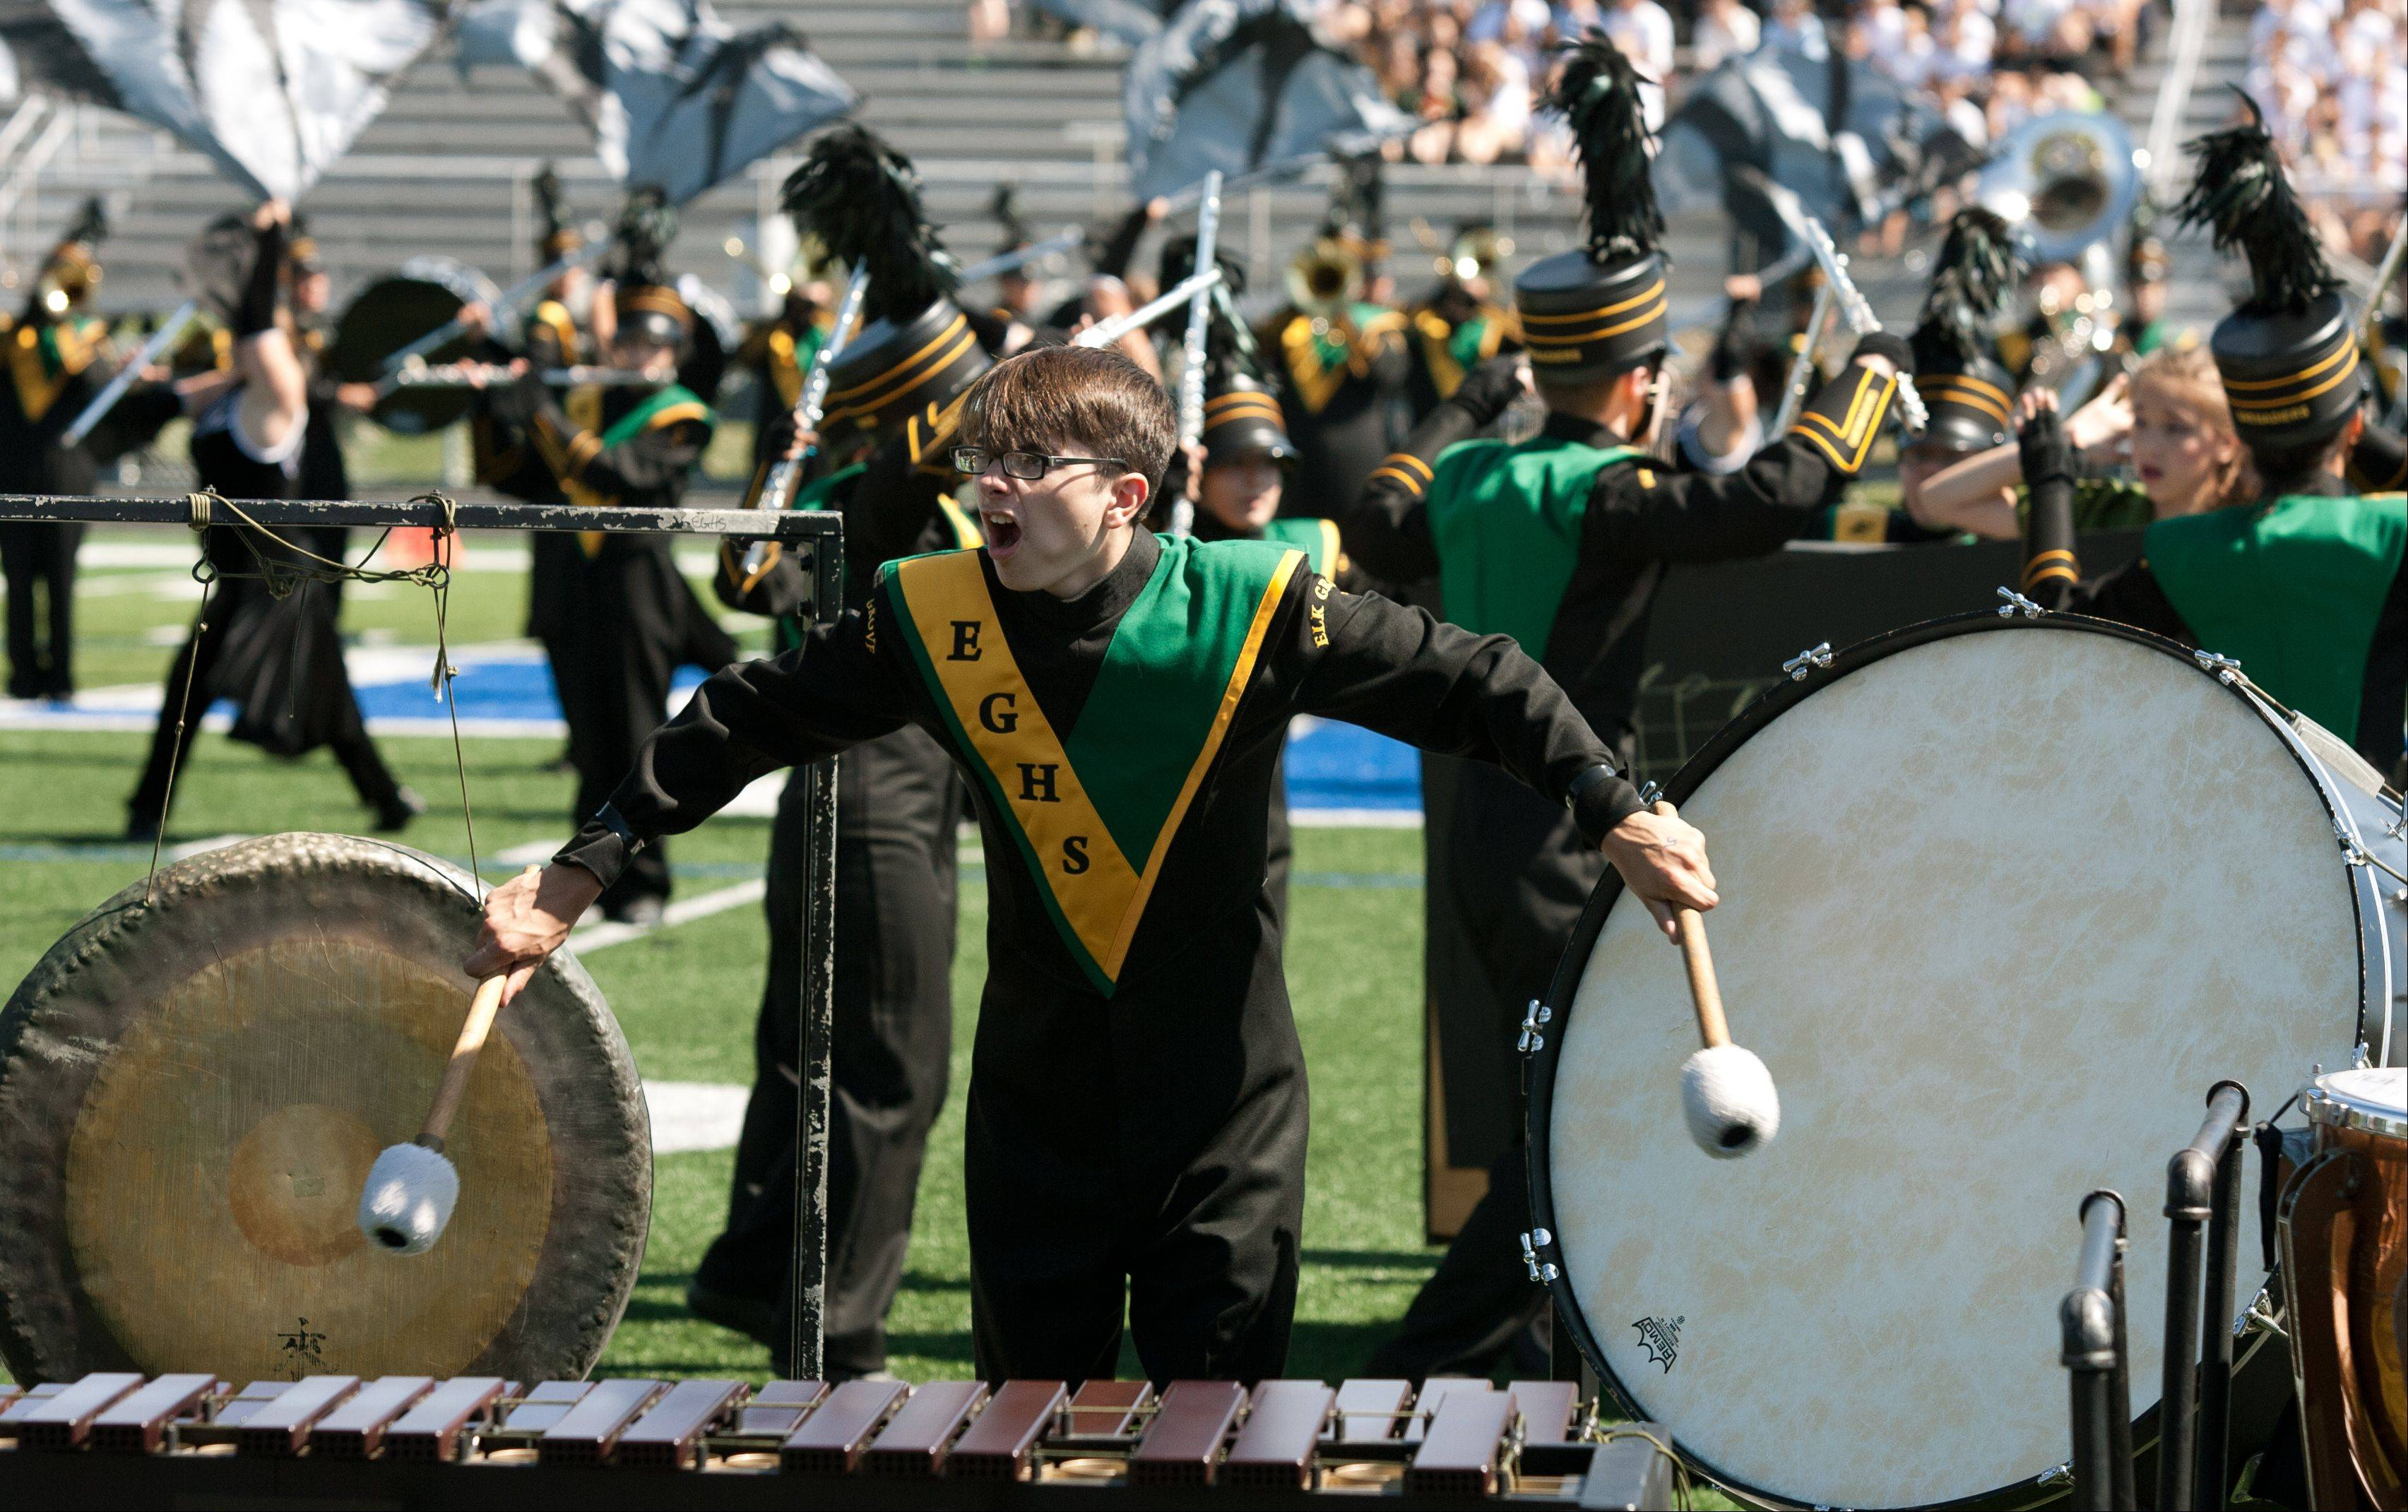 Elk Grove High School Marching Band member Michael Bravos plays the gong and bass drum during the 35th annual Lancer Joust Marching Band Competition at Lake Park High School in Roselle.